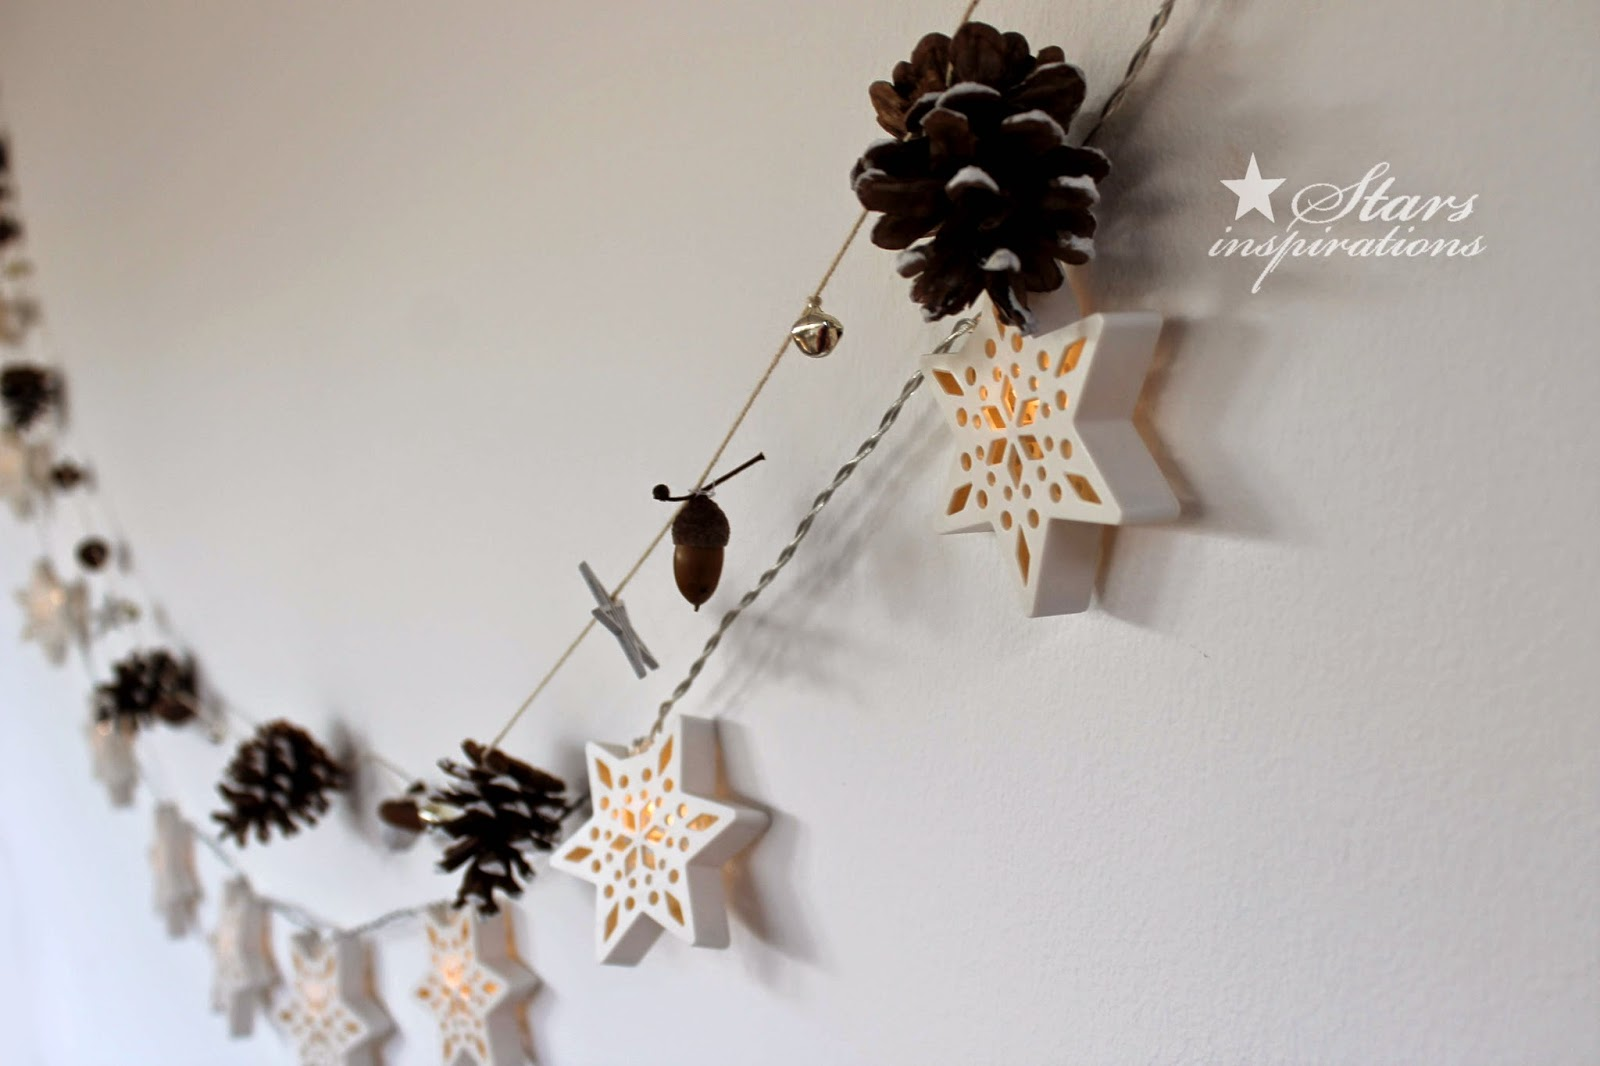 http://starsinspirations.blogspot.com/2014/12/2014-christmas-decorations-garland.html